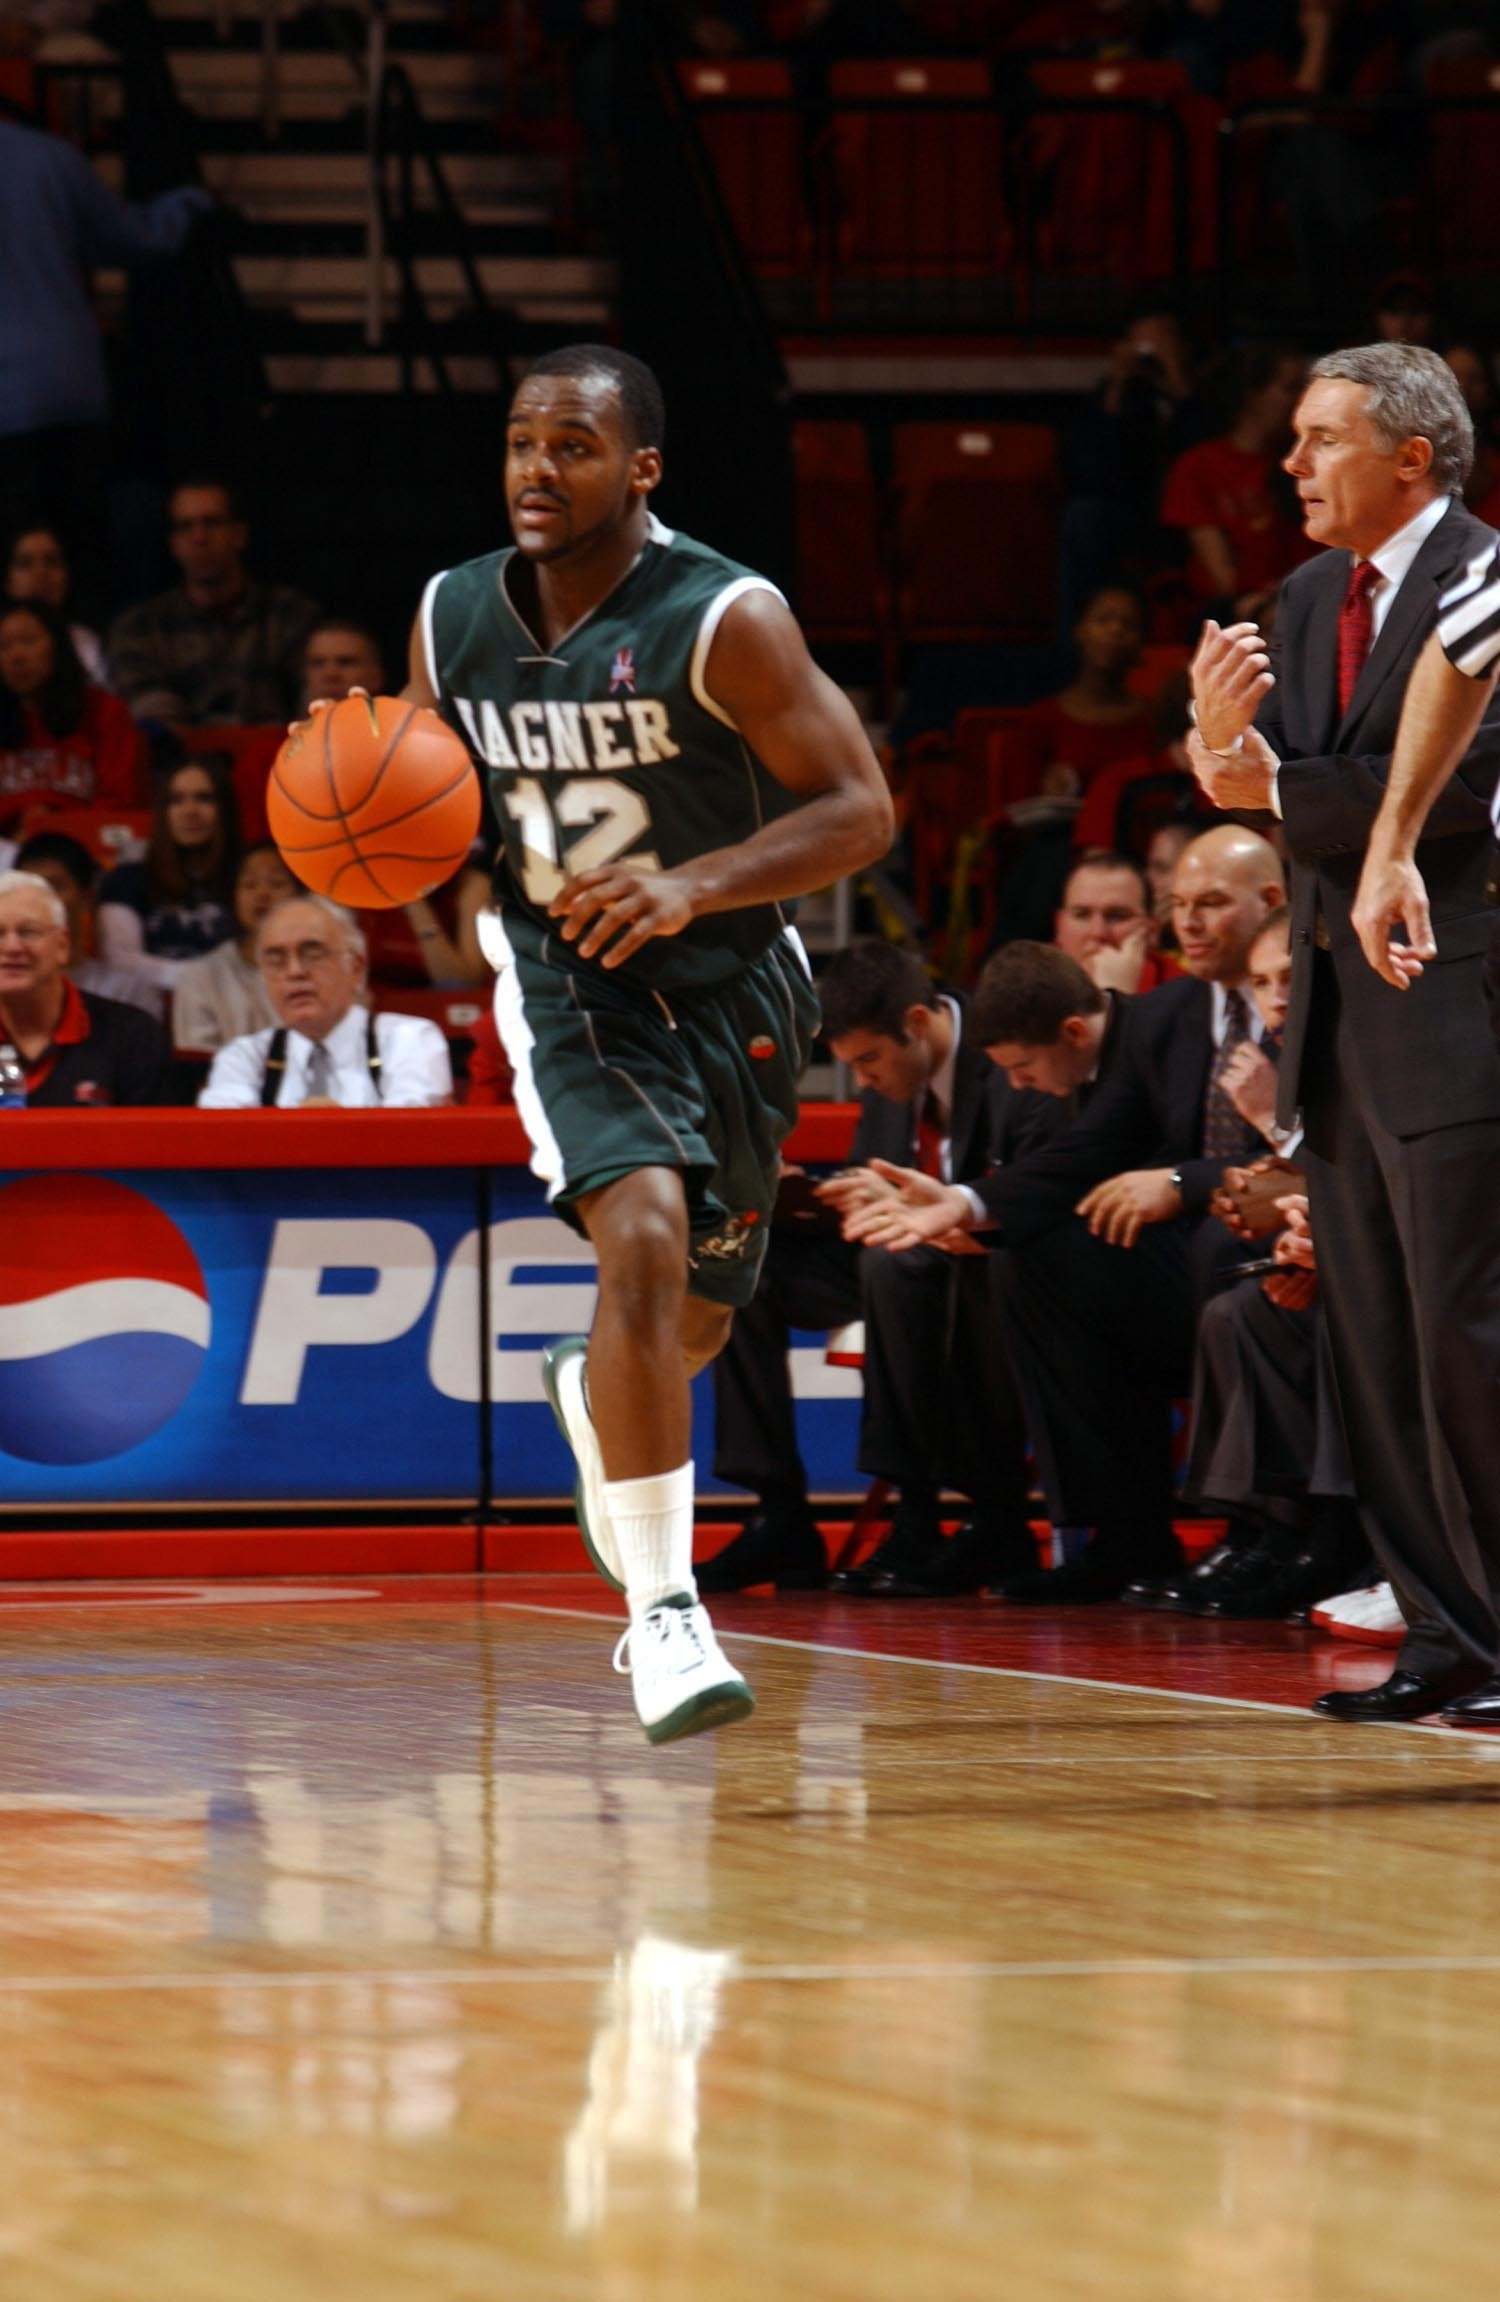 Southampton alum Courtney Pritchard was a star point guard for Wagner College in the early 2000's and was recently inducted into the school's Hall of Fame. He led the team to the NCAA tournament in his junior year.  COURTESY WAGNER ATHLETICS